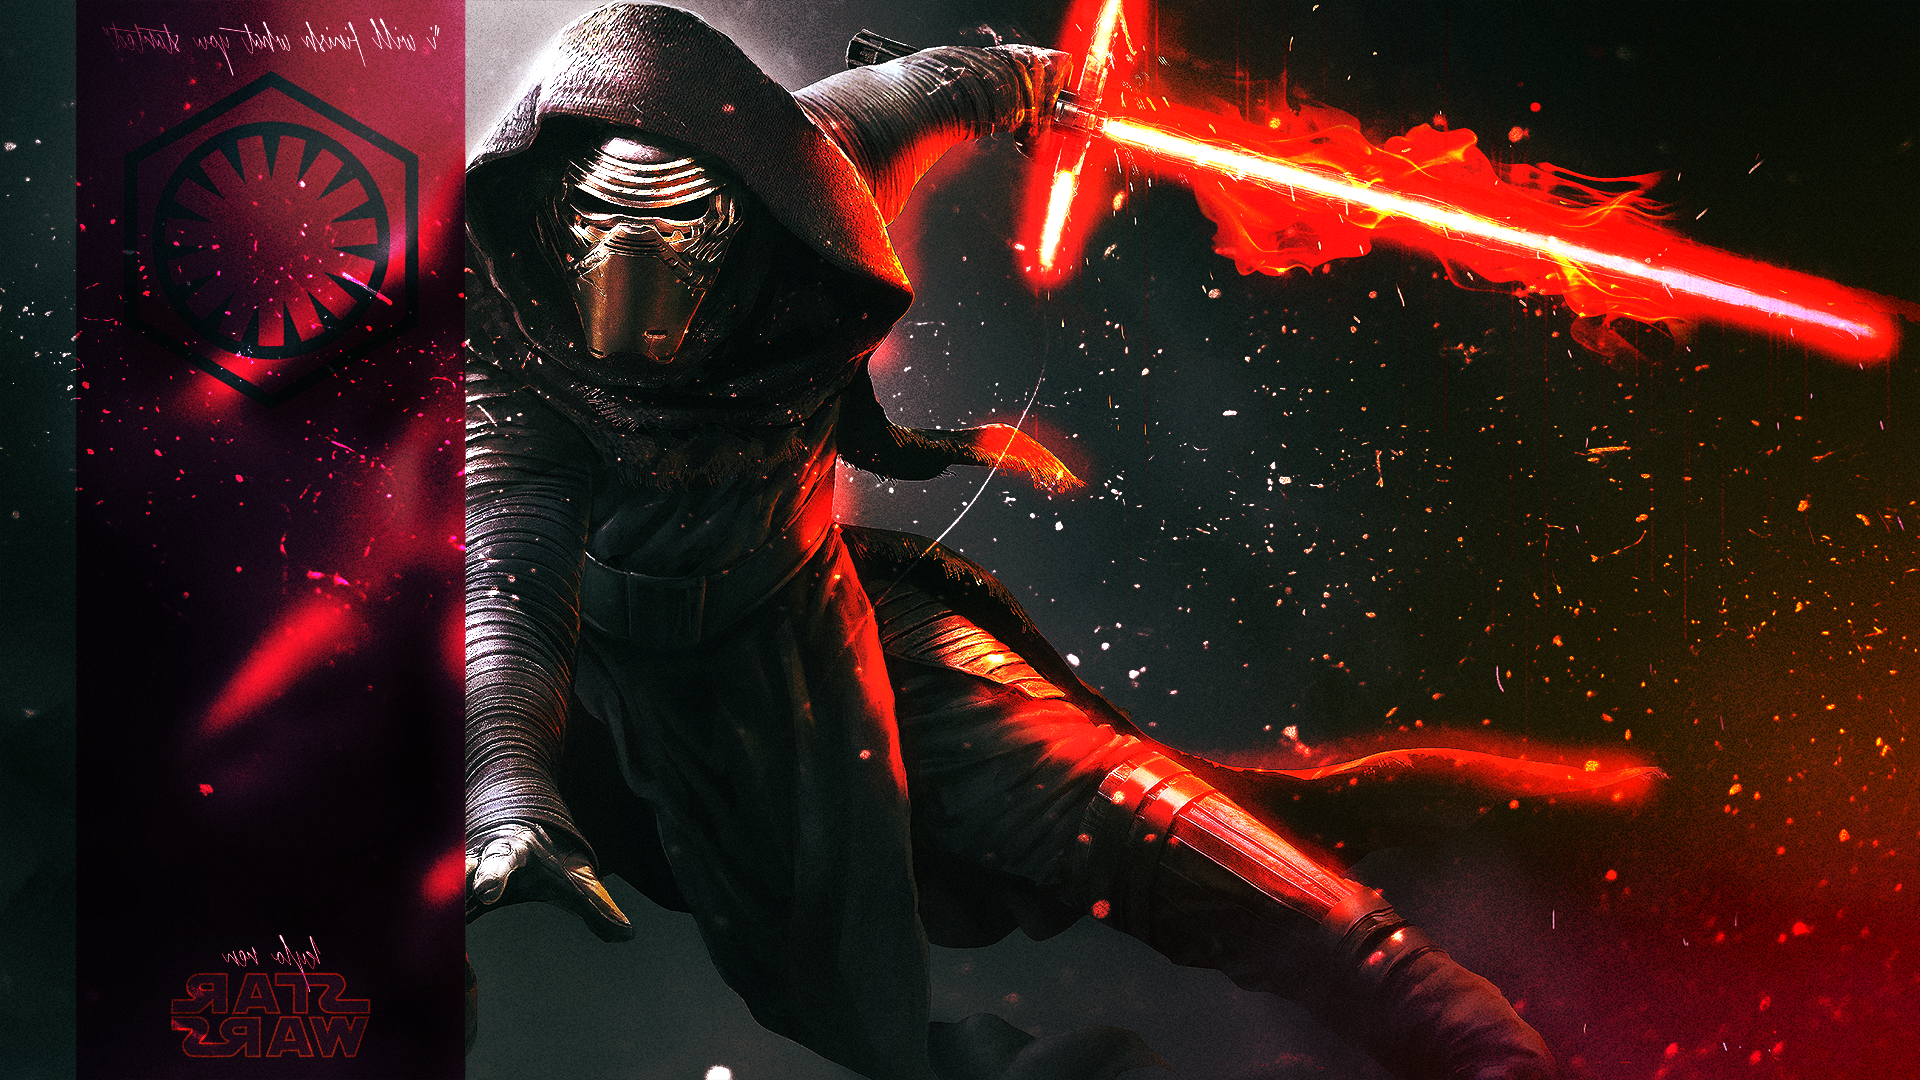 Tags 1920x1080 px Fan Art Kylo Ren Star Wars Episode VII   The Force 1920x1080